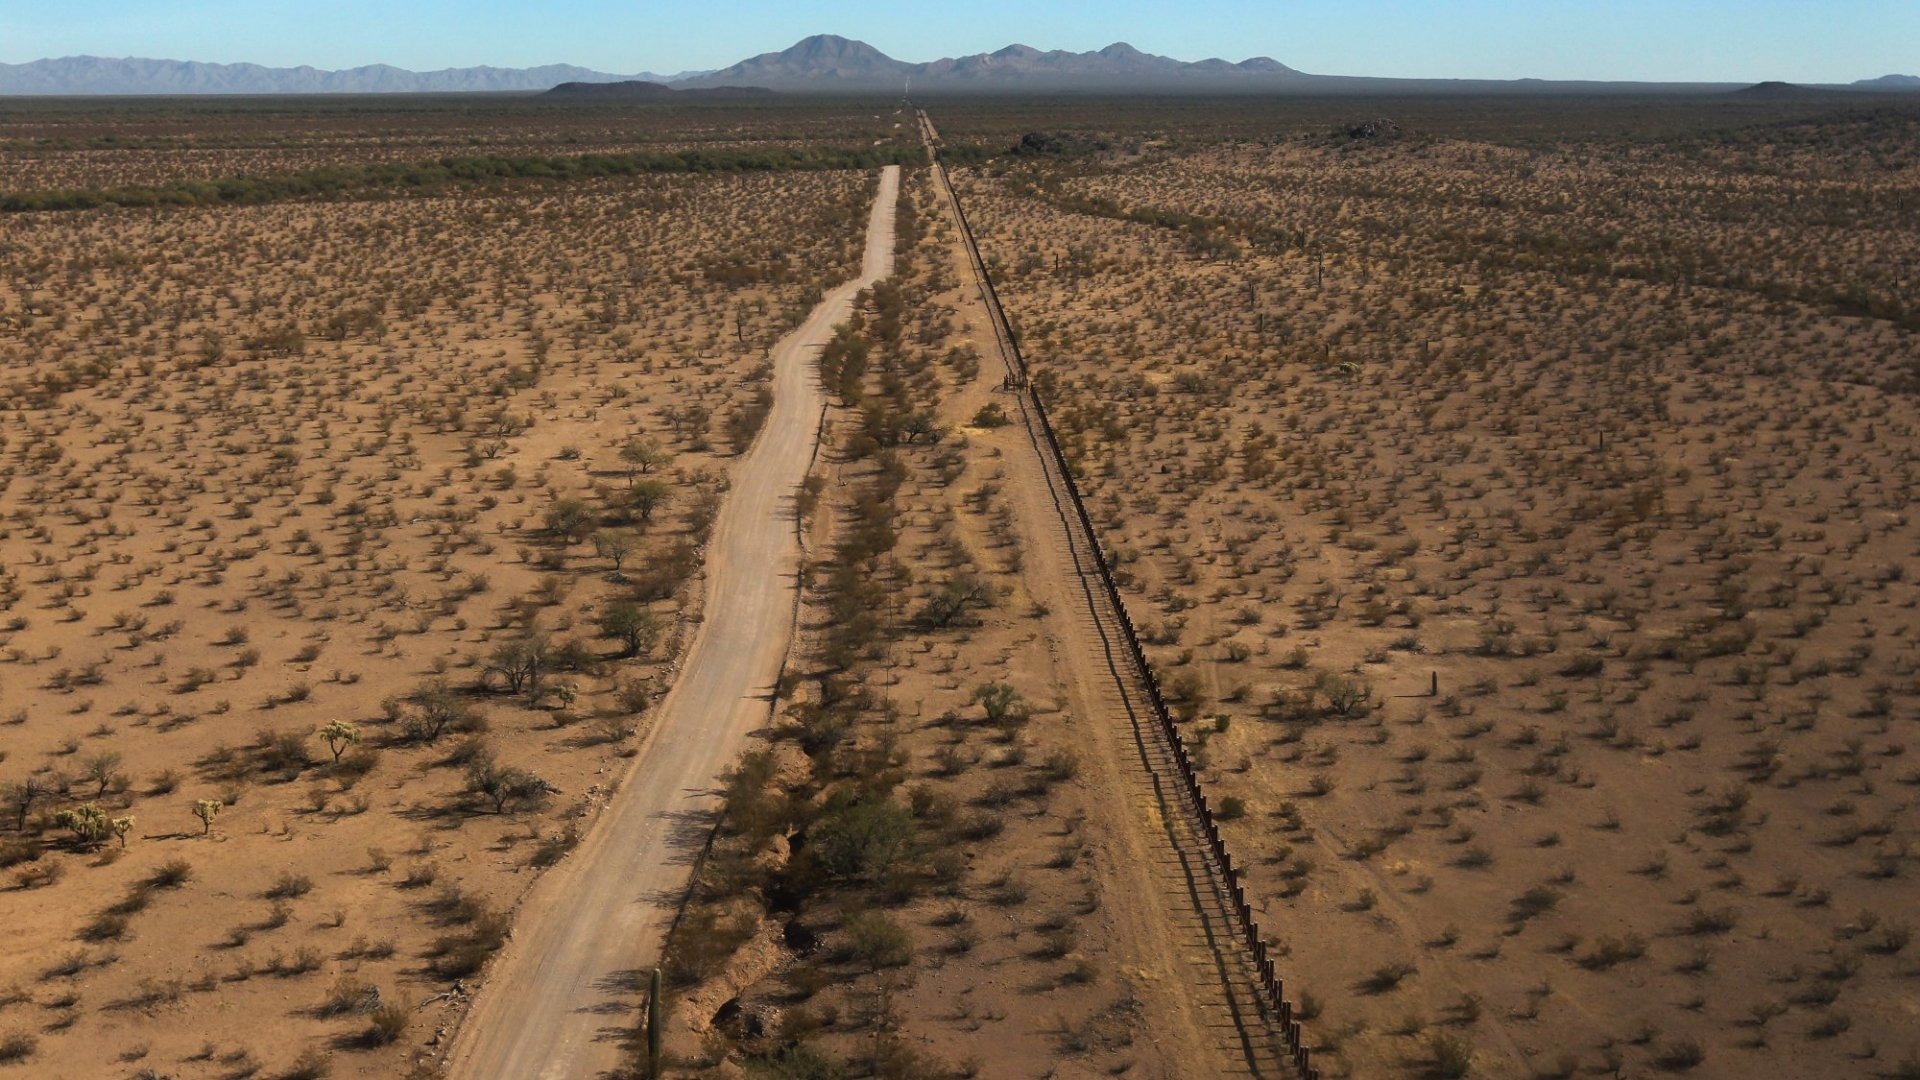 Legal Marijuana in U.S. Means Fewer Drugs Coming Across Mexican Border